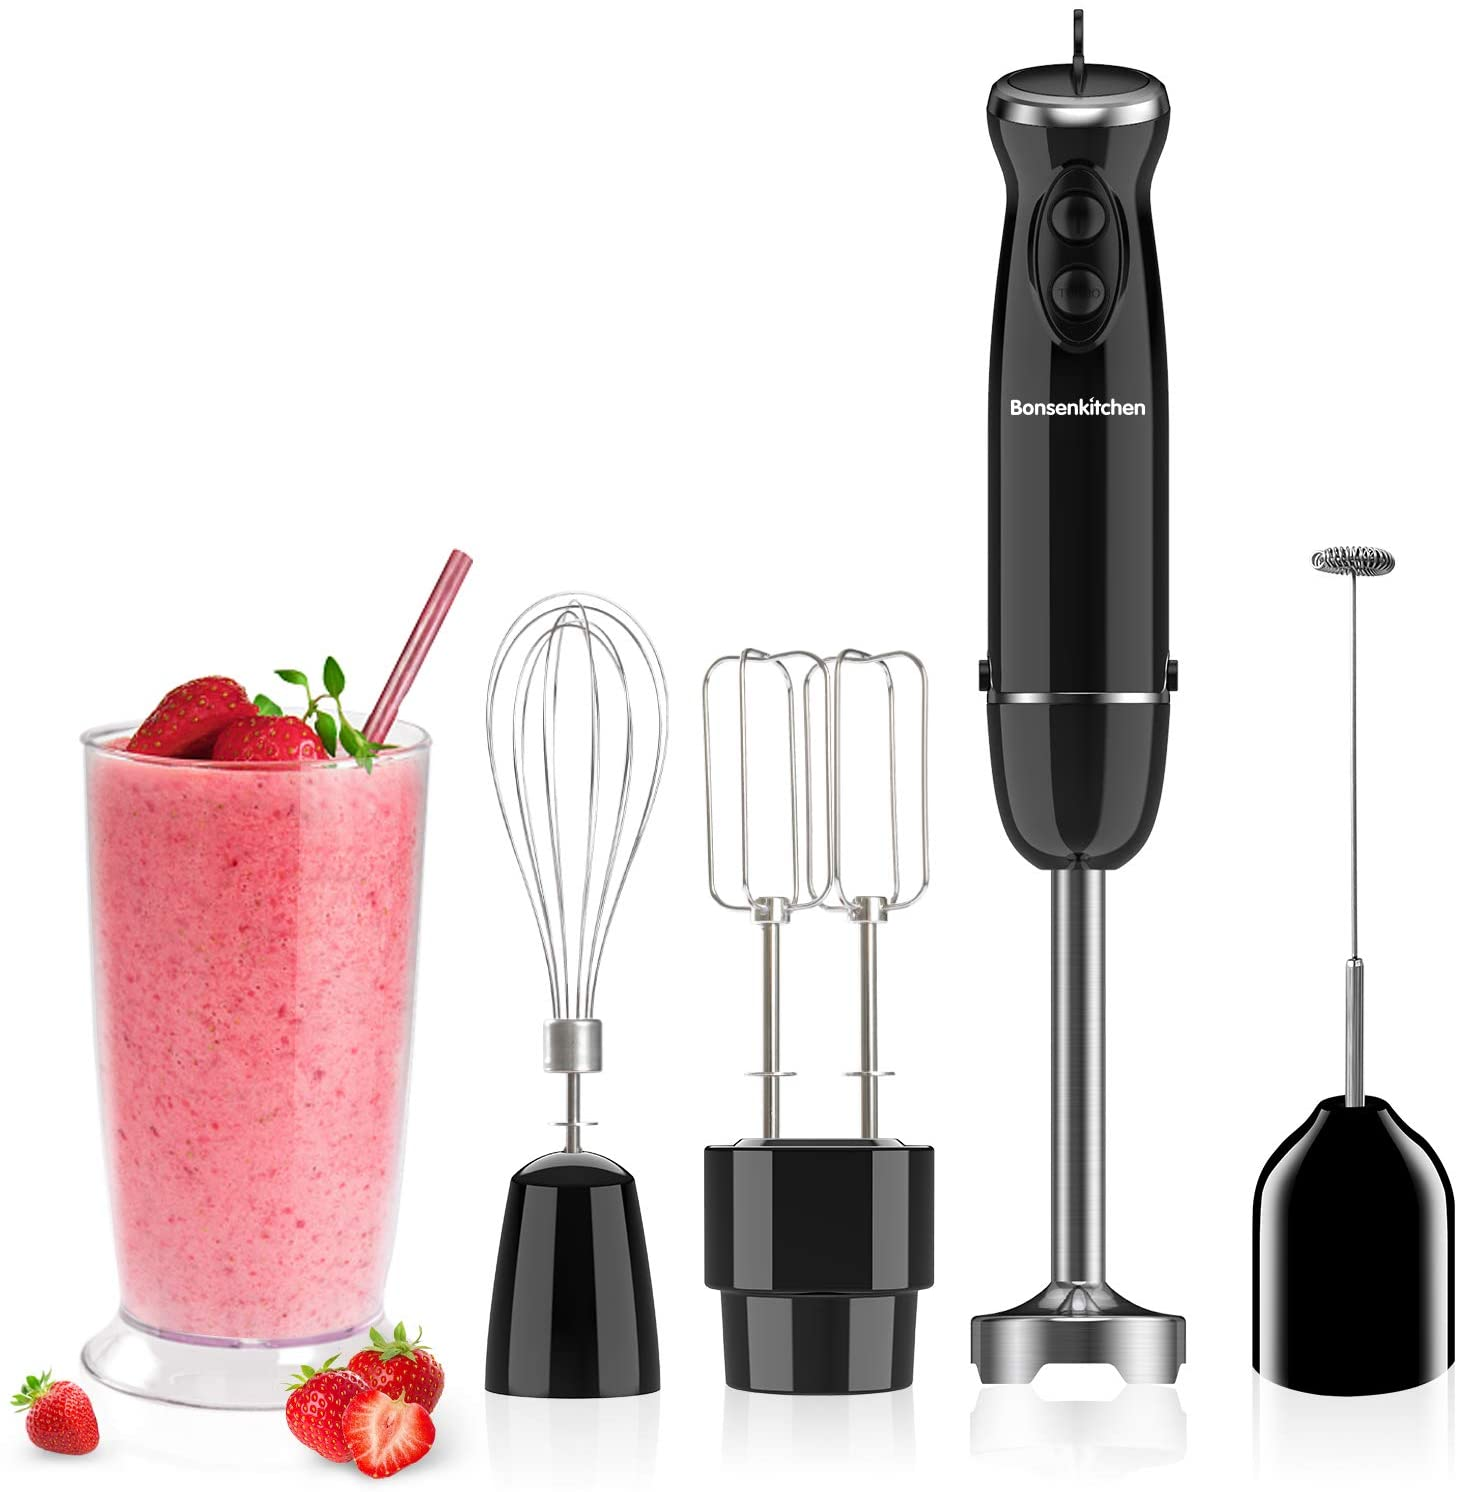 Bonsenkitchen HB8004 Turbo 12 Speed Immersion Hand Blender